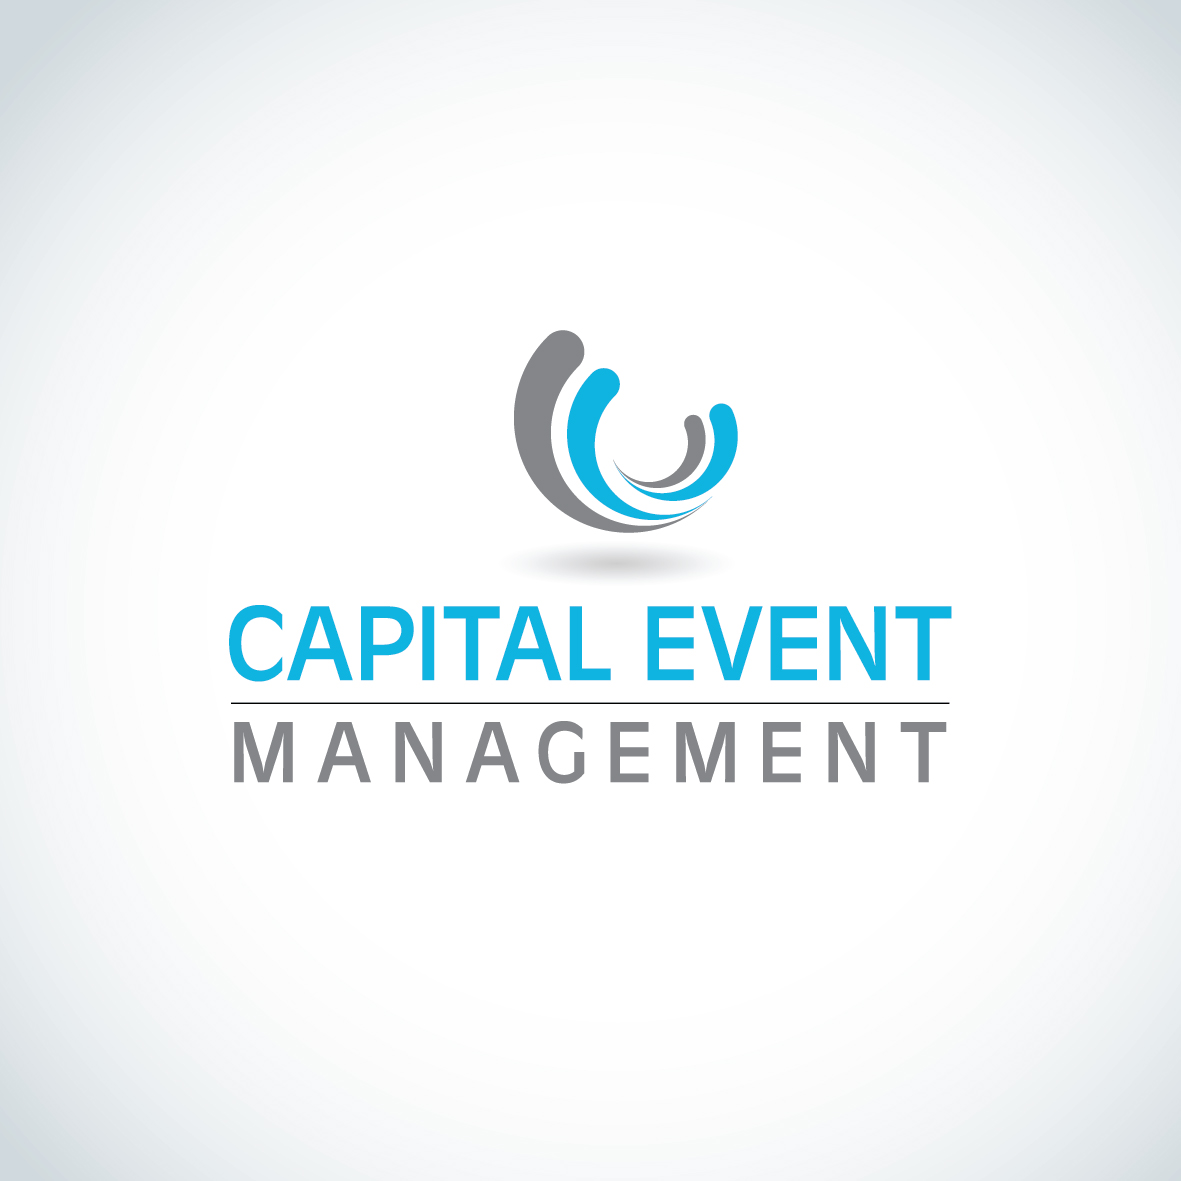 Logo Design Contests » Capital Event Management » Design. Door Knocker Signs. Cosmetic Labels. Weekly Banners. Woman Murals. Fruit Lettering. Wine Wall Murals. Asbestos Removal Signs Of Stroke. Classroom Wall Murals